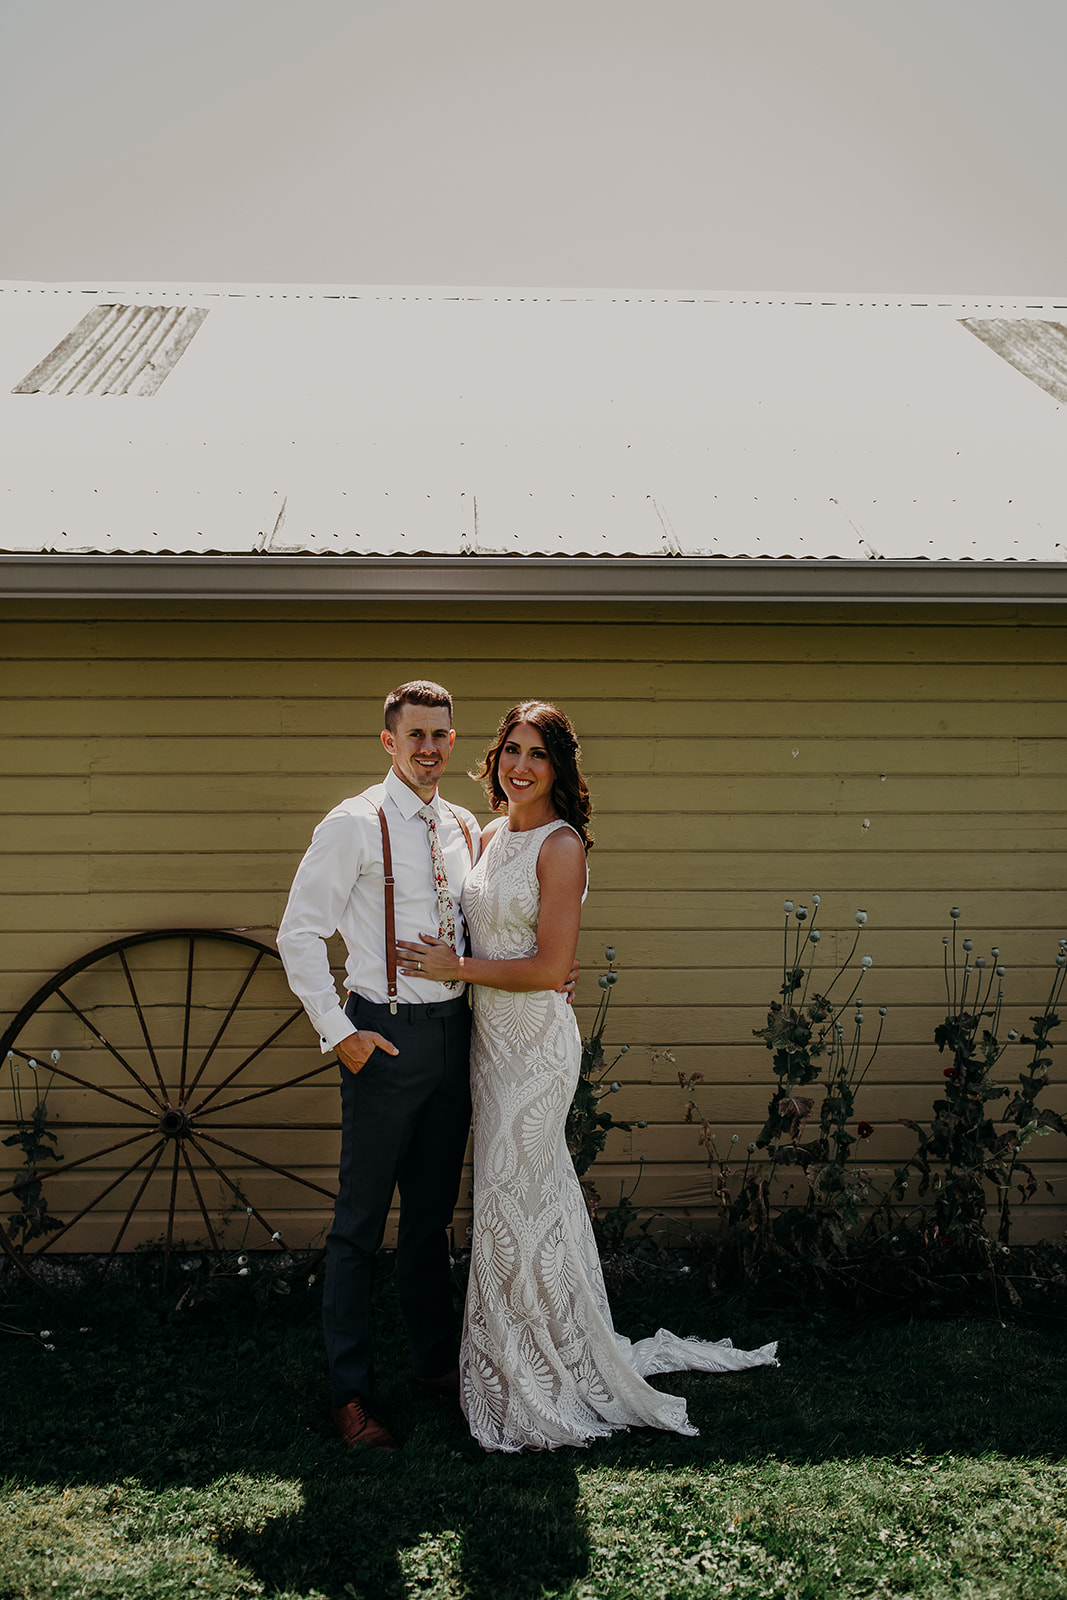 mount-vernon-wedding-salt-box-barn-amanda-riley-megan-gallagher-photography-3_(169_of_250).jpg